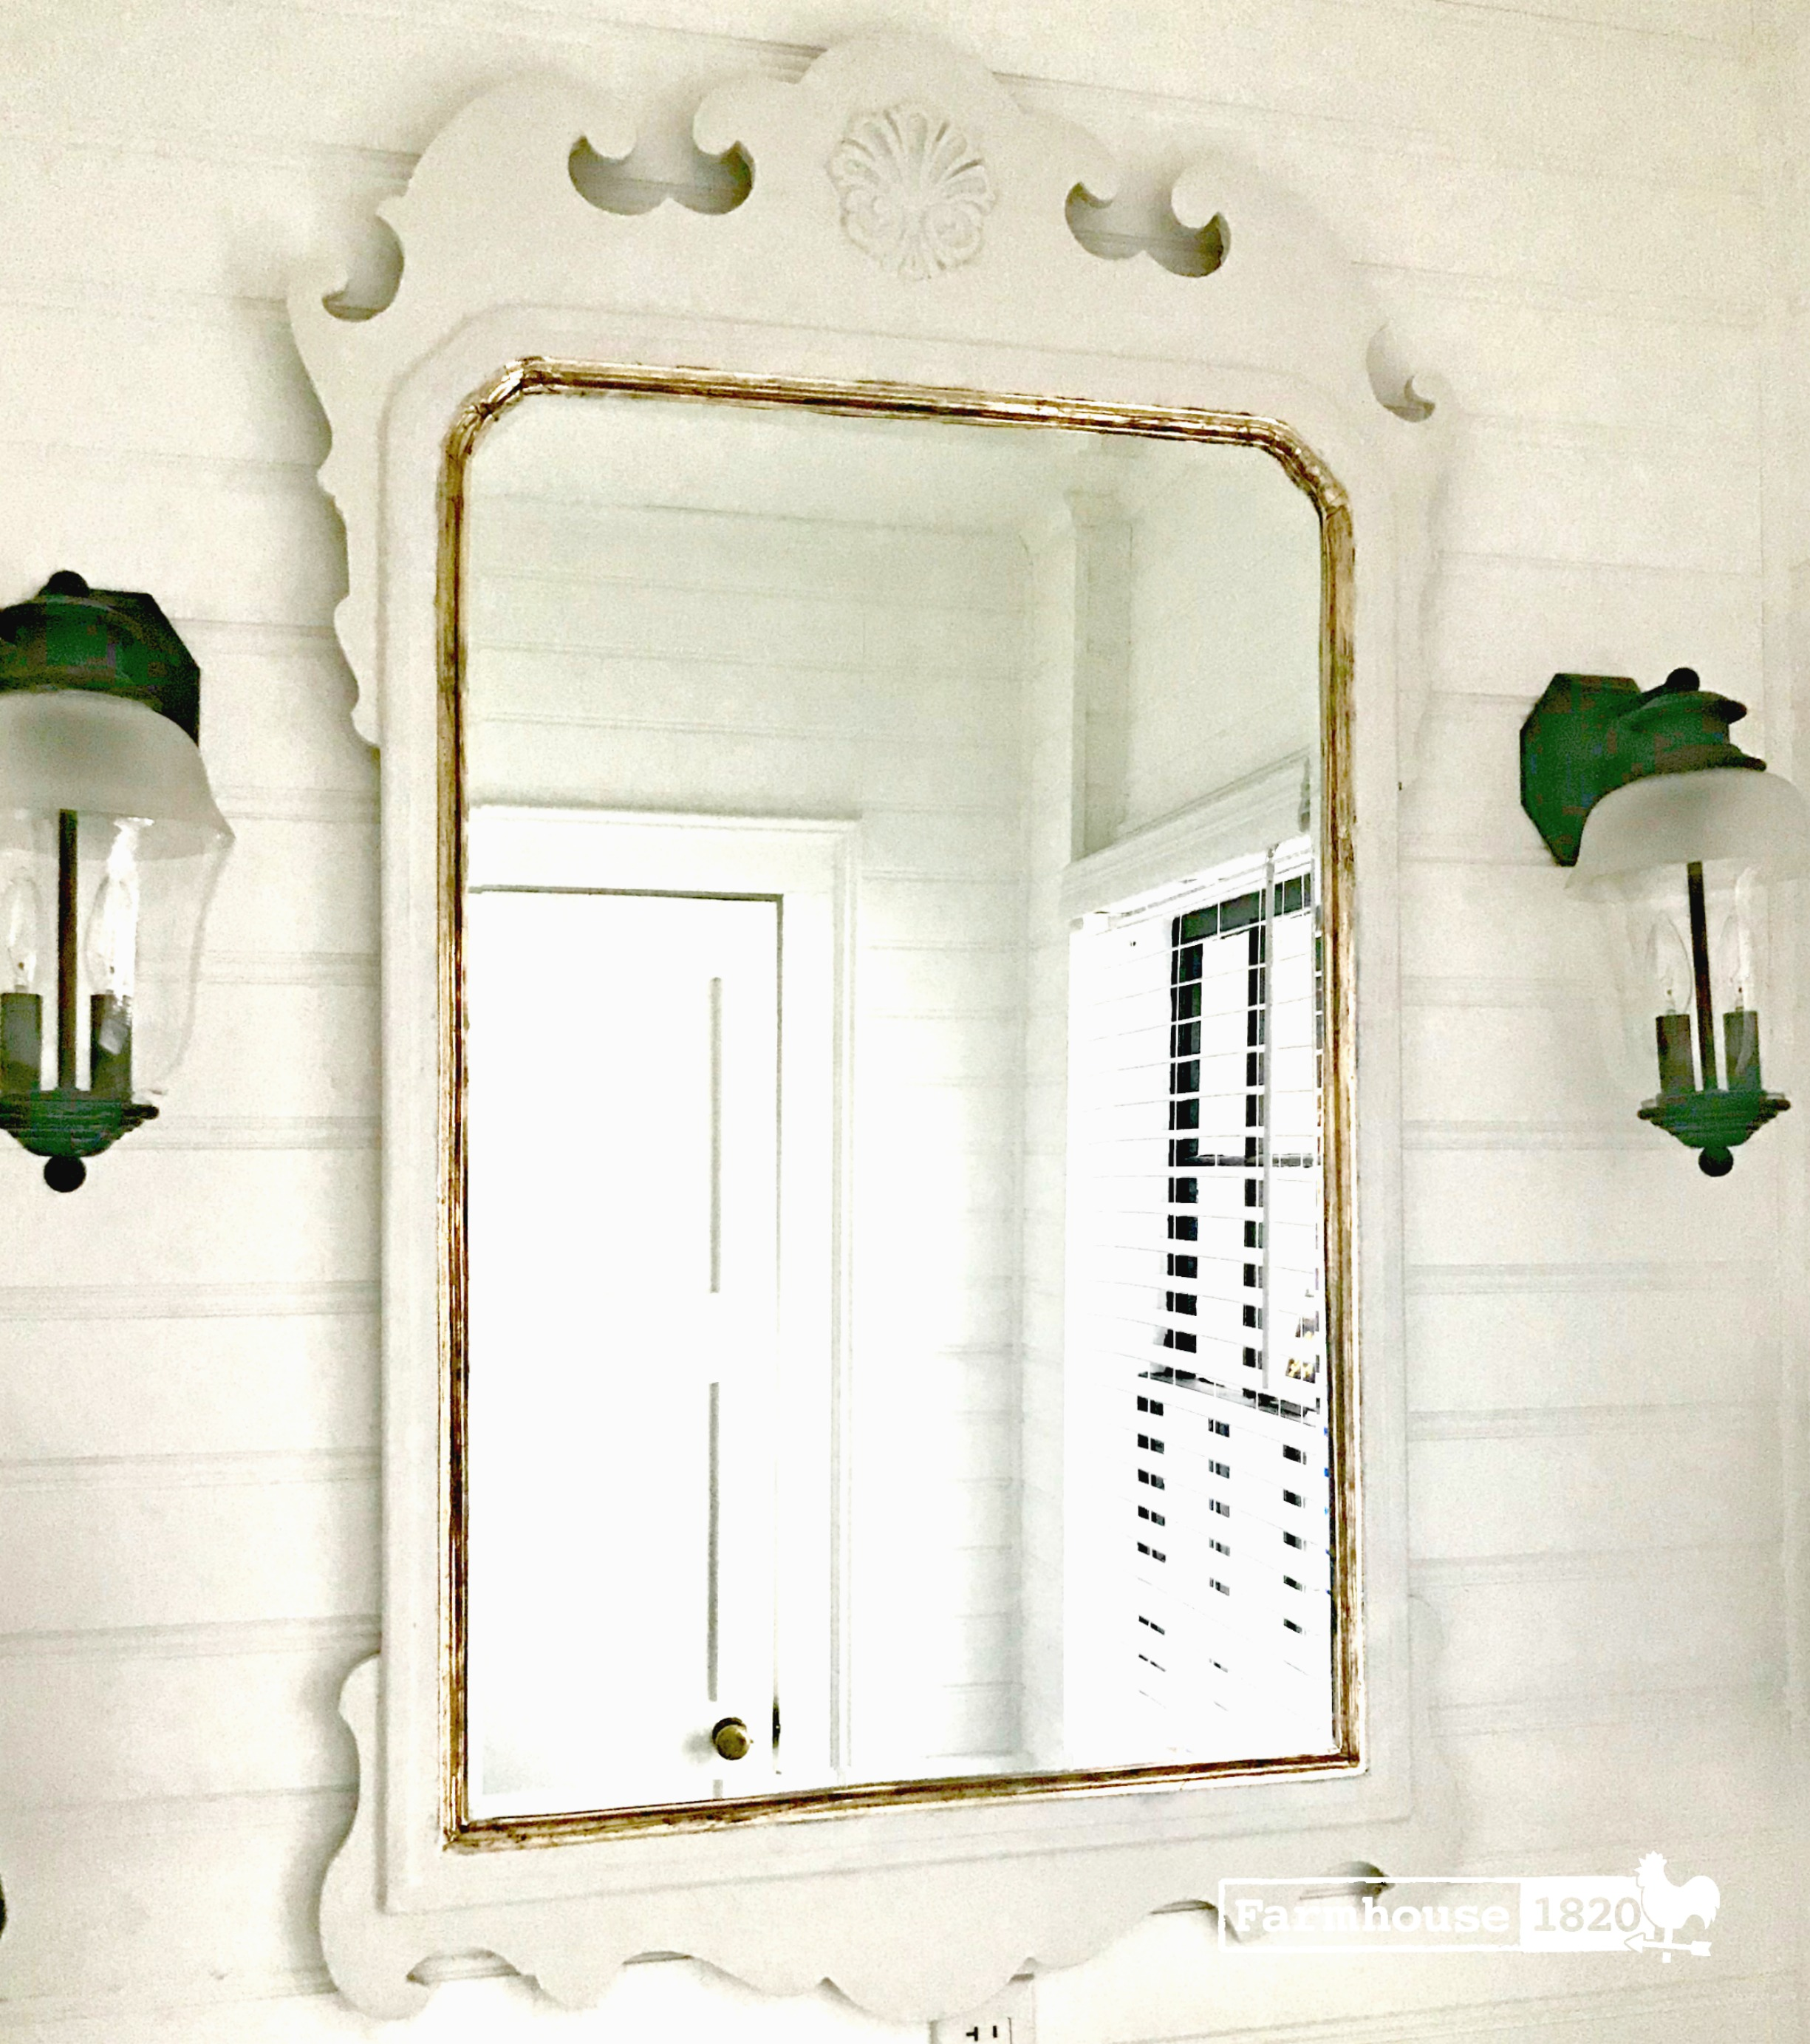 Brass tape - adding glitz to an antique mirror with brass tape